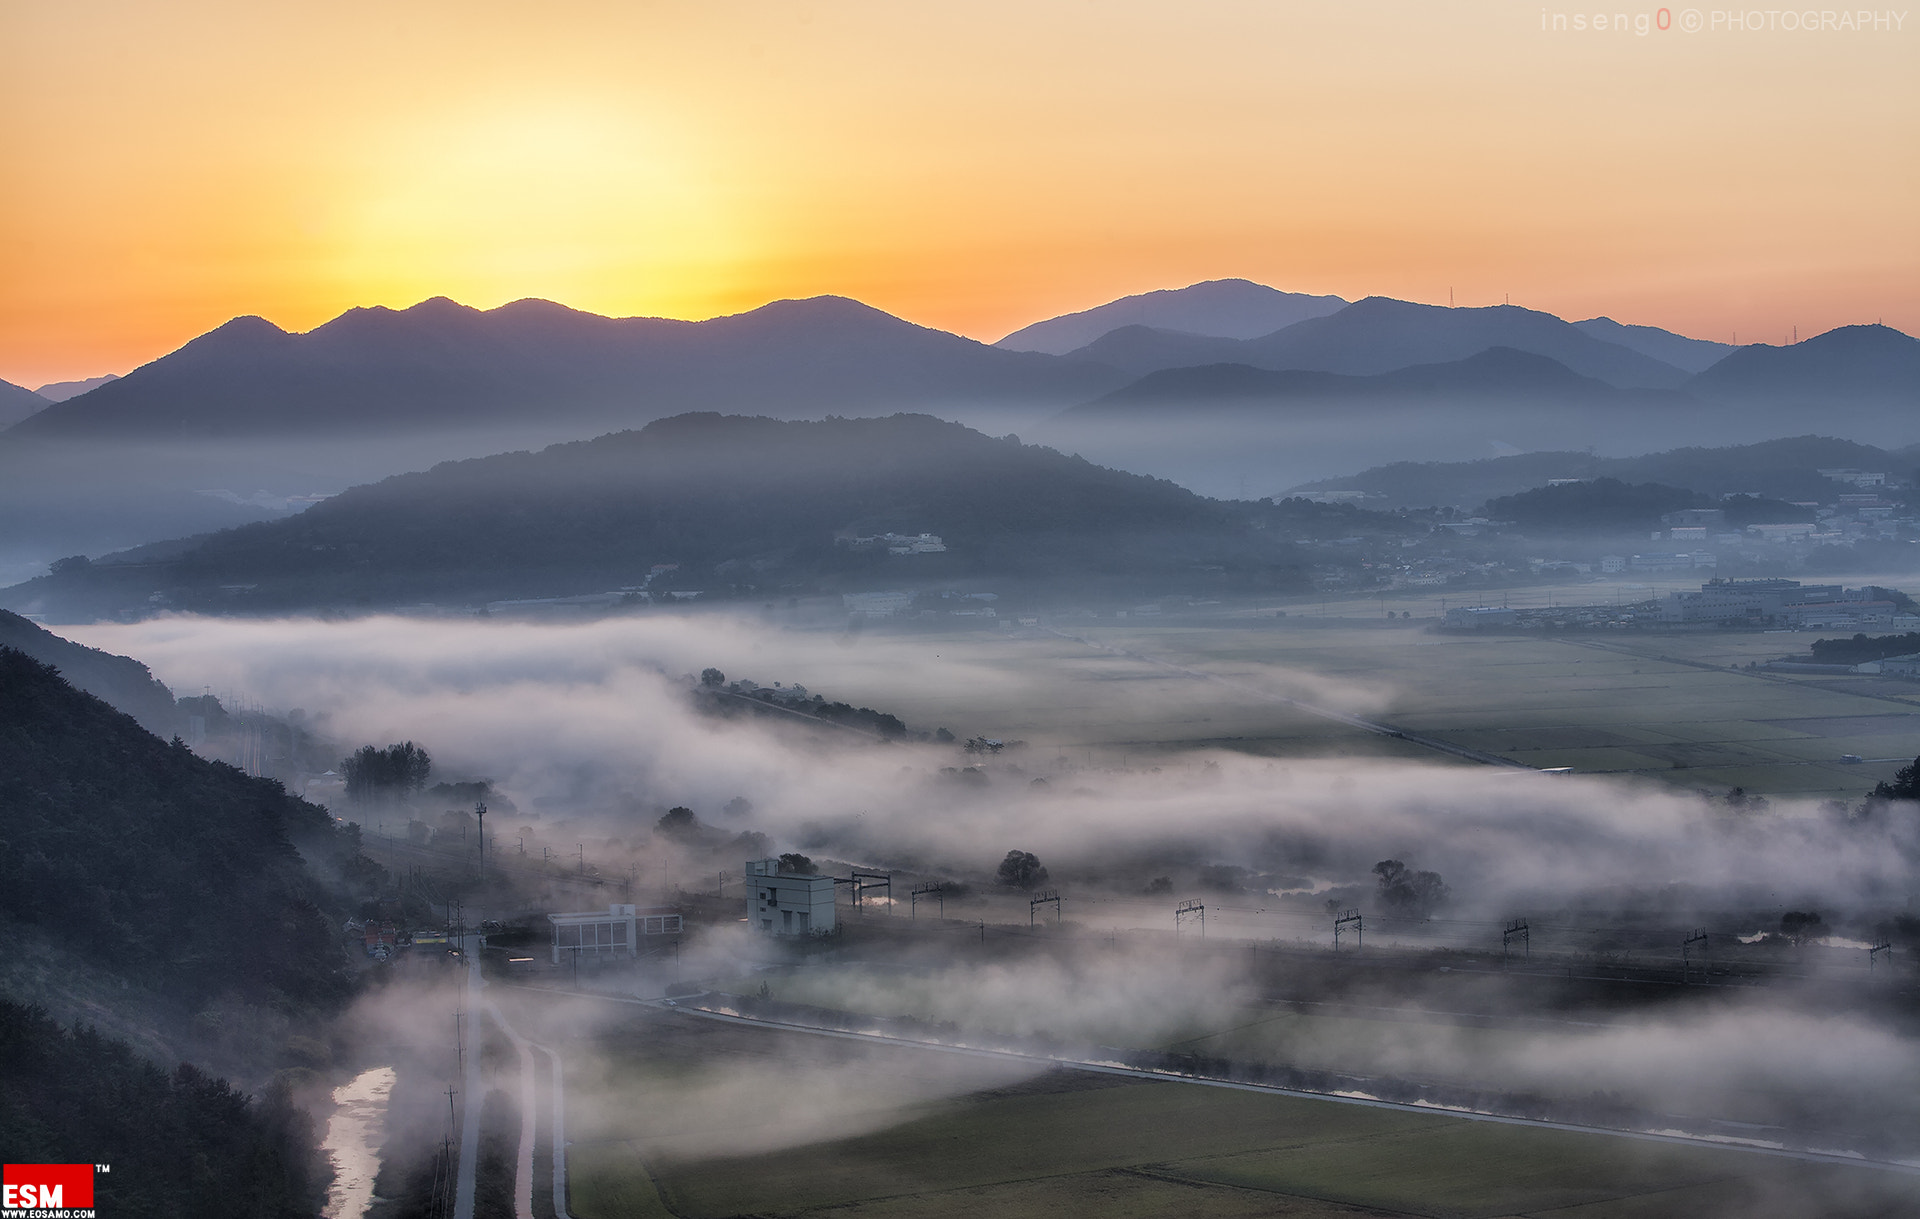 Photograph BREAK OF DAY by chan-wook Kim on 500px